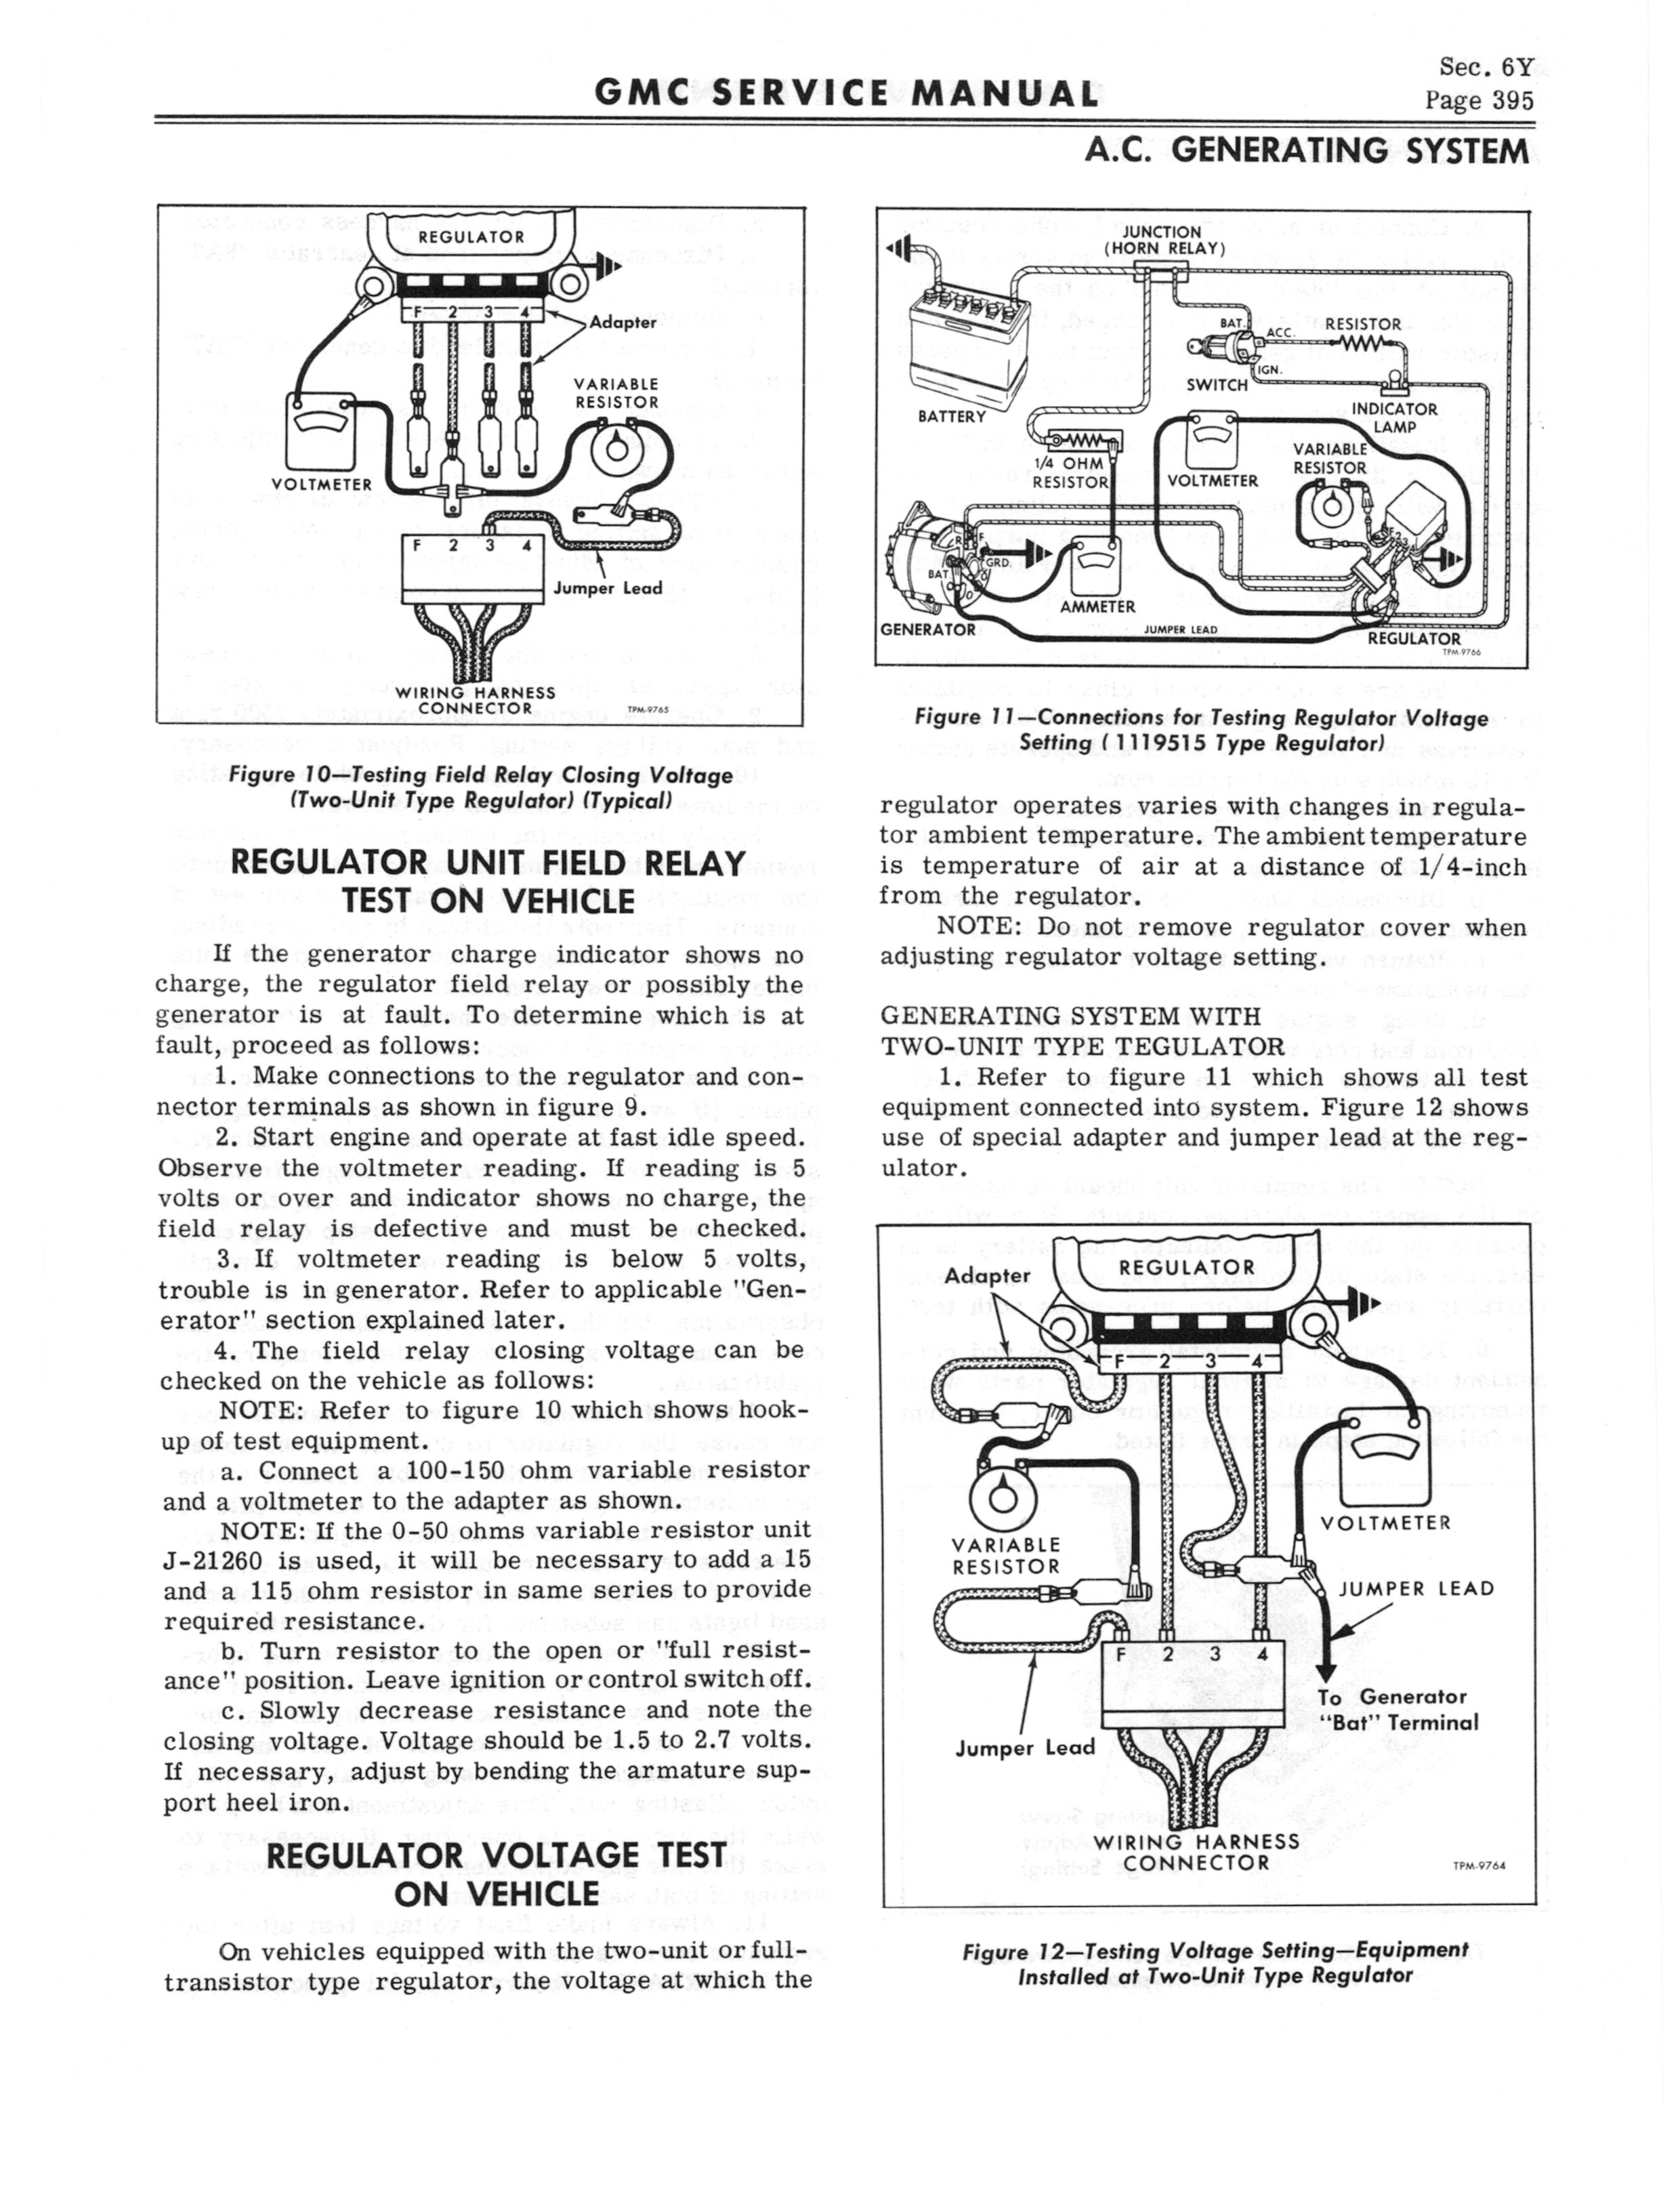 1966 GMC Service Manual Series 4000-6500 page 401 of 506